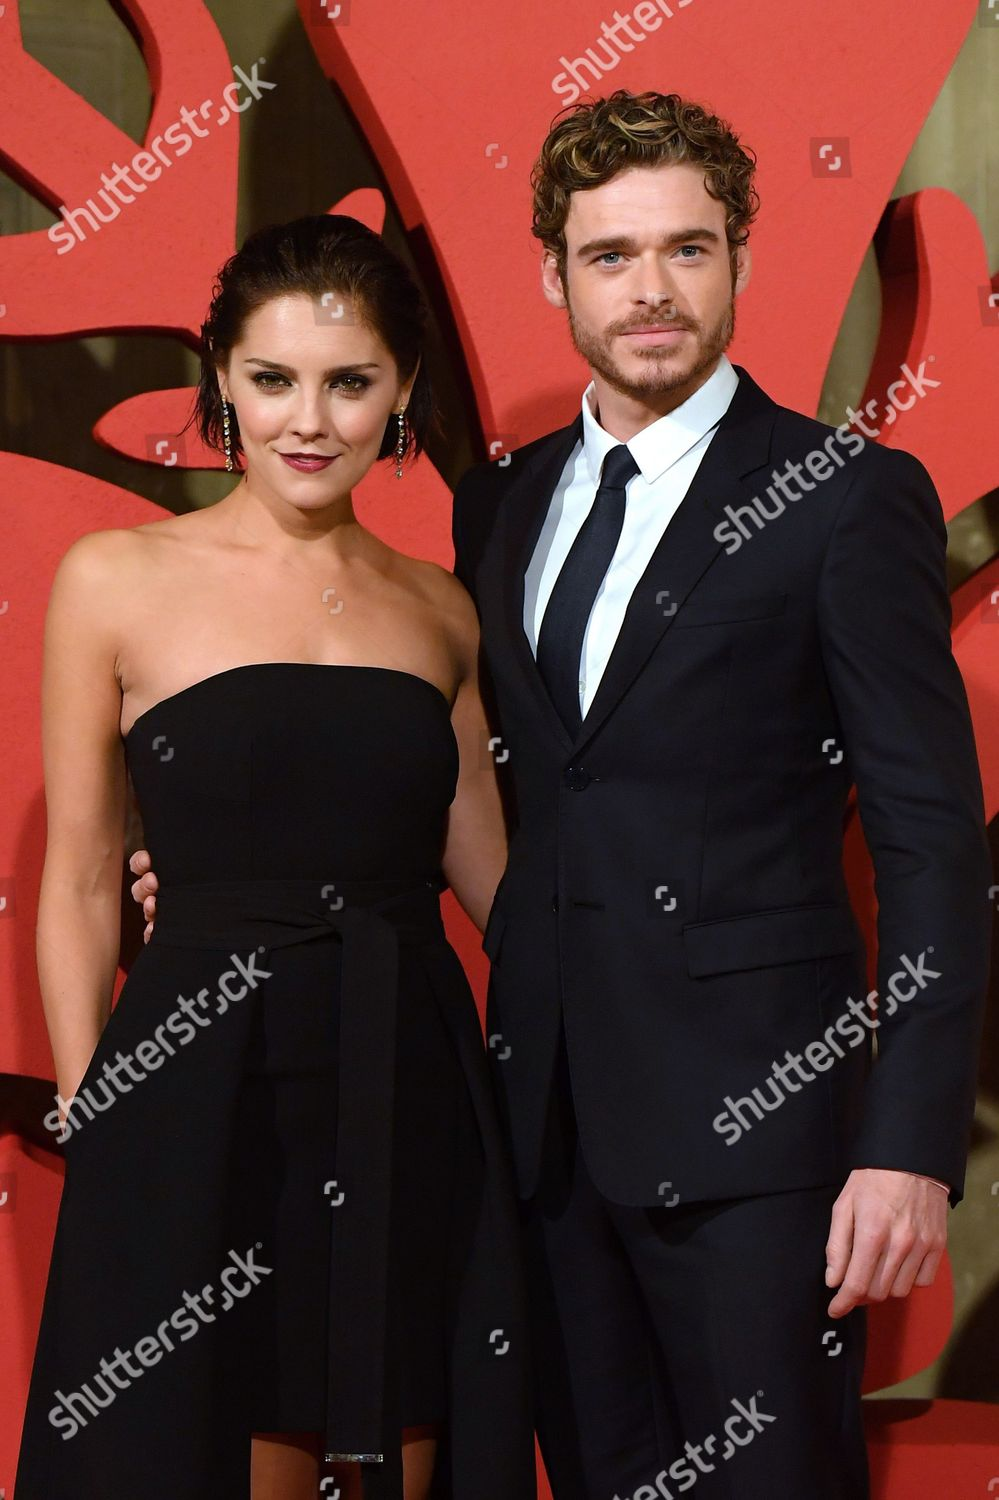 Annabel Scholey Medici annabel scholey richard madden editorial stock photo - stock